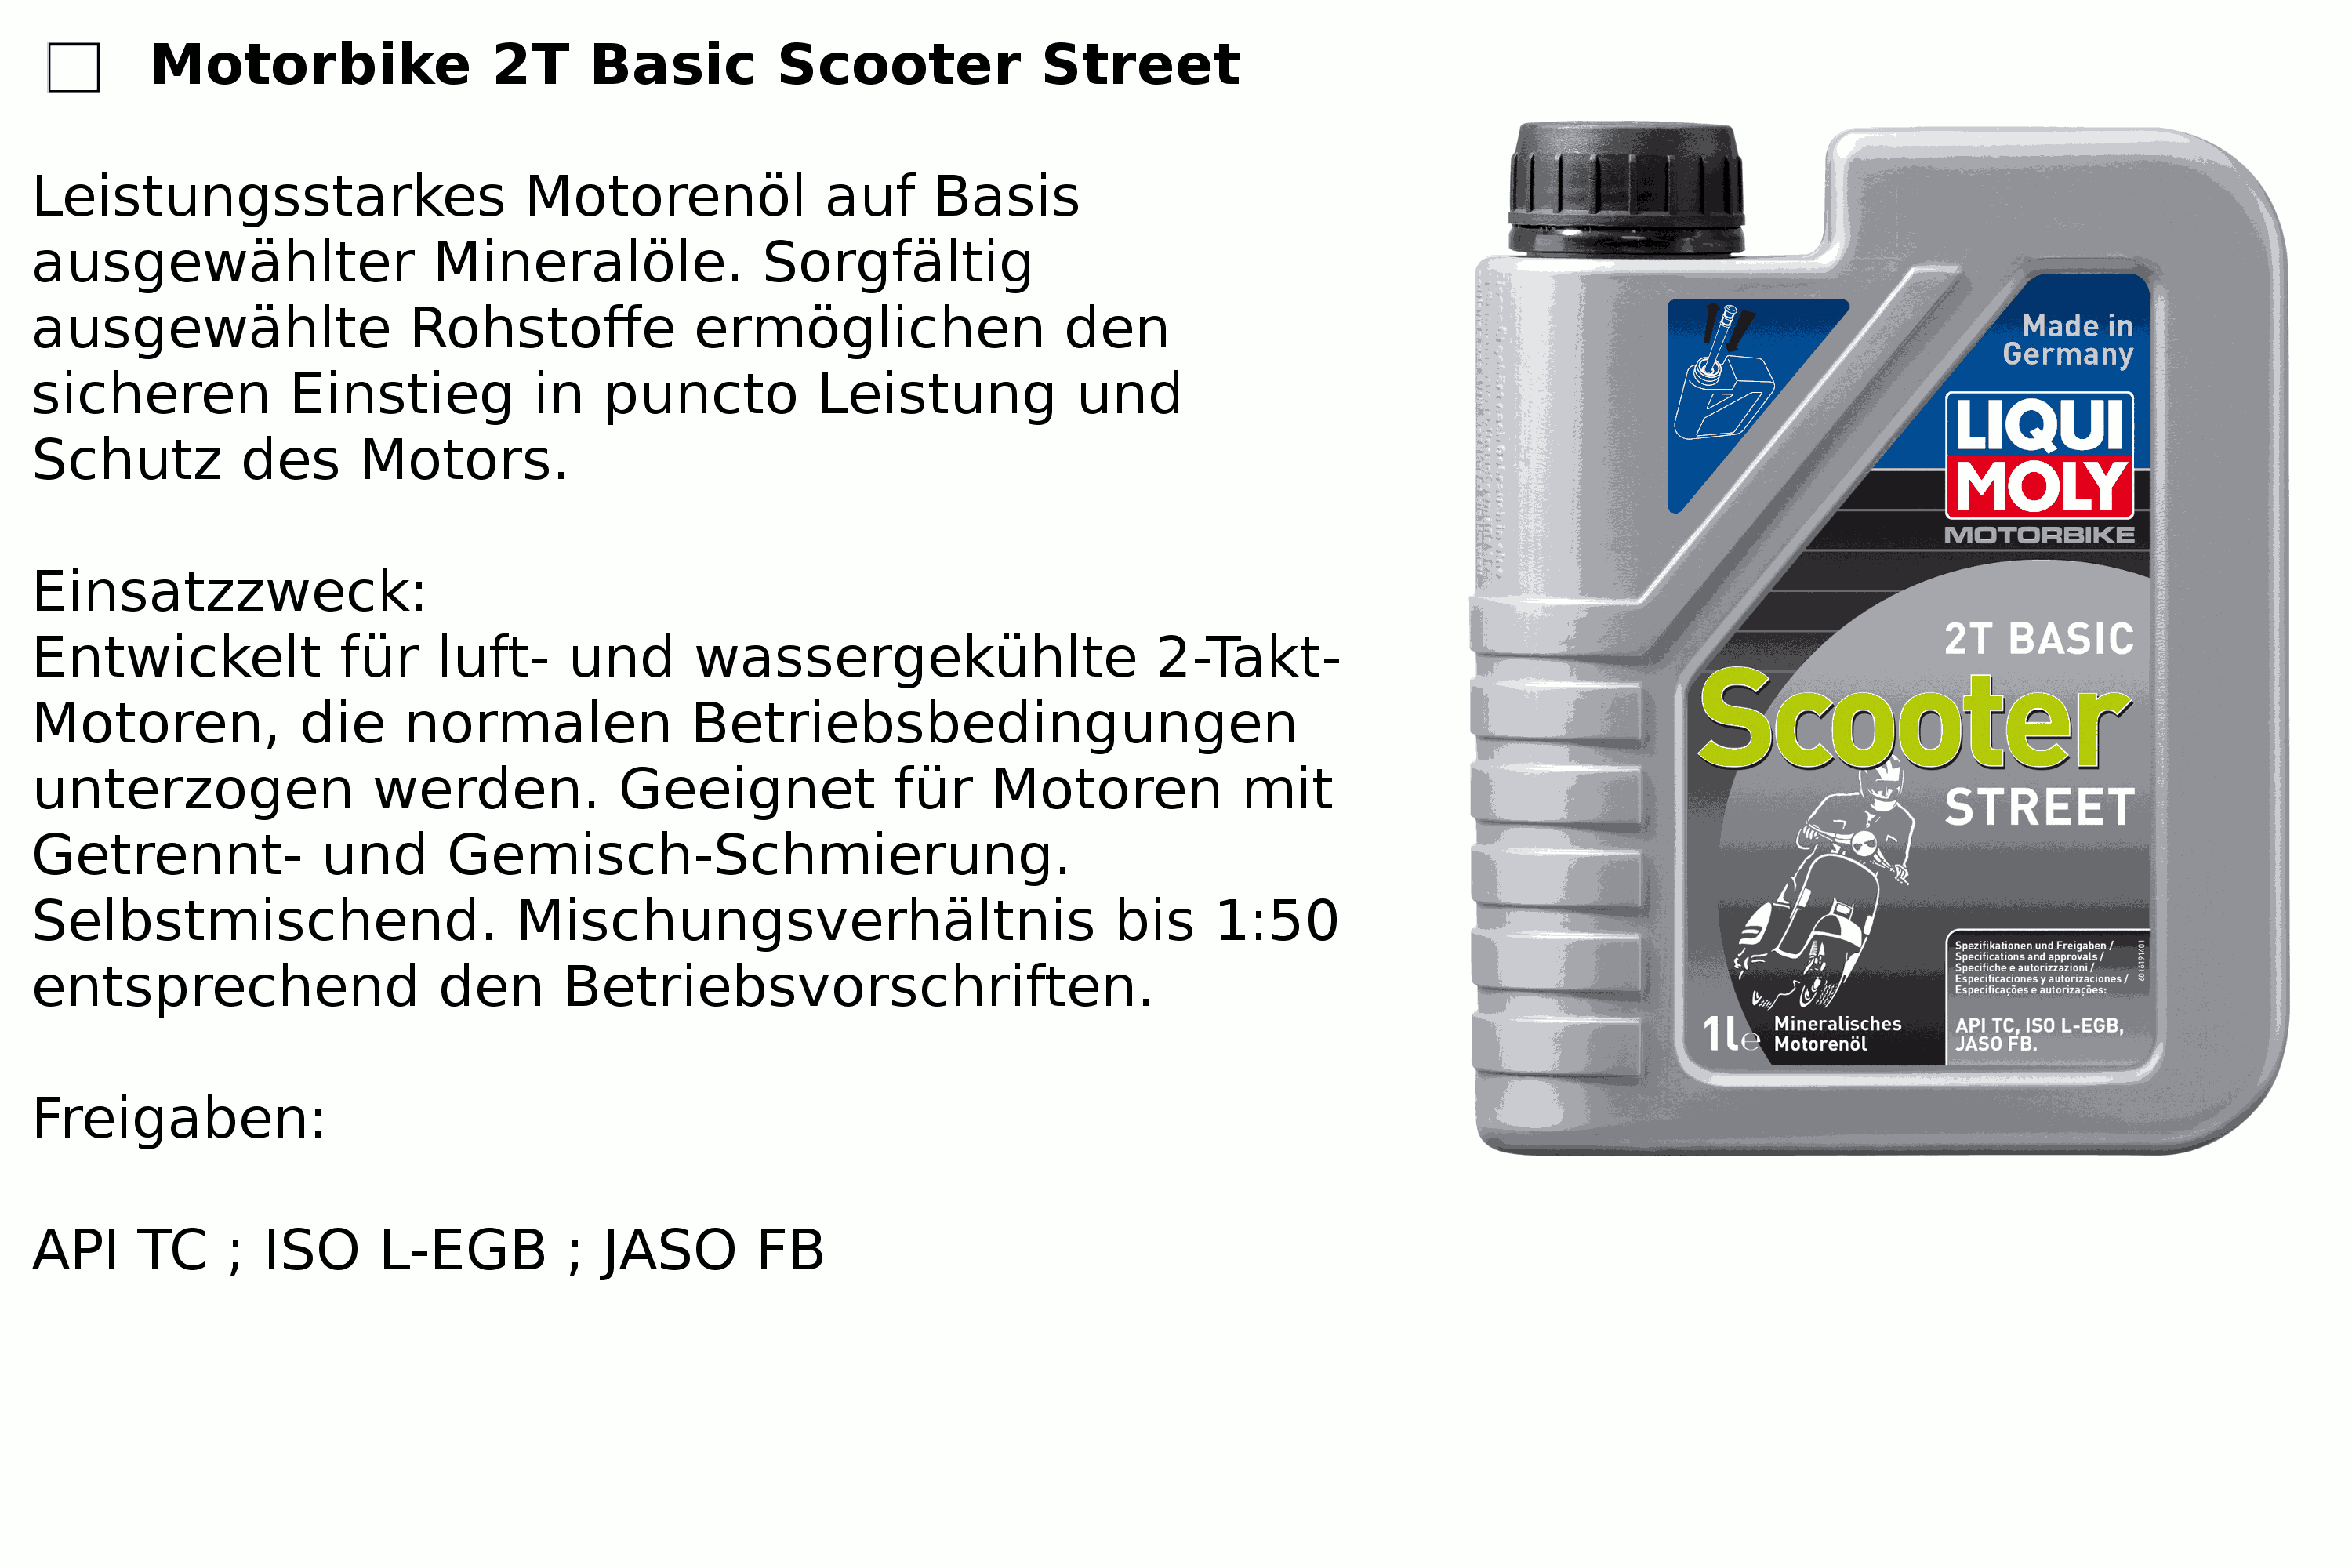 2T Basic Scooter Street